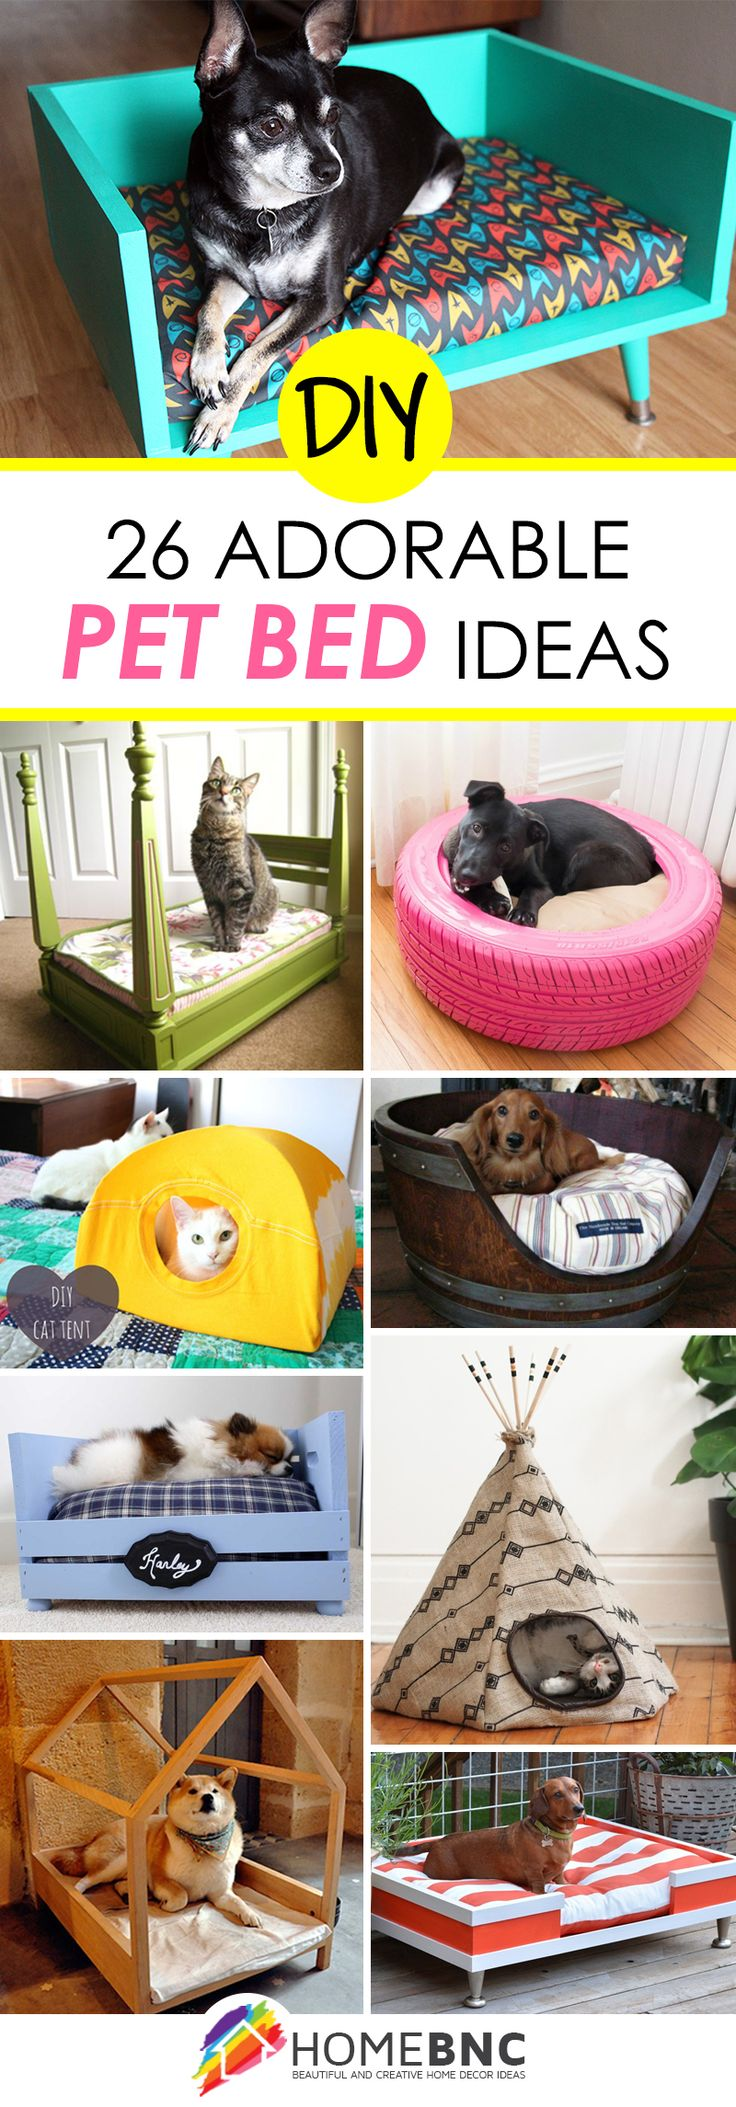 DIY Pet Beds - Tap the pin for the most adorable pawtastic fur baby apparel! You'll love the dog clothes and cat clothes! <3